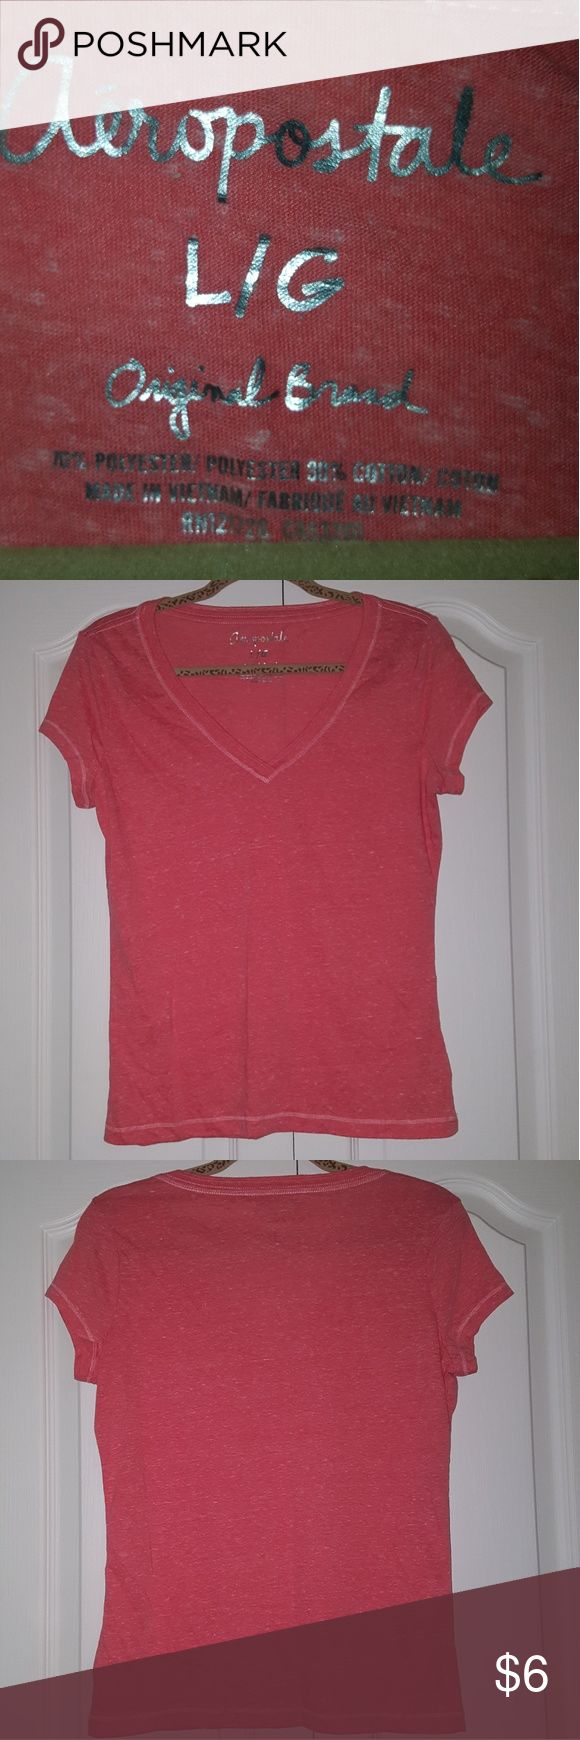 Aeropostale simple V-neck t-shirt Good condition. Worn only a few times. Size: large. Color: coral, pink/orangish. Aeropostale Tops Tees - Short Sleeve